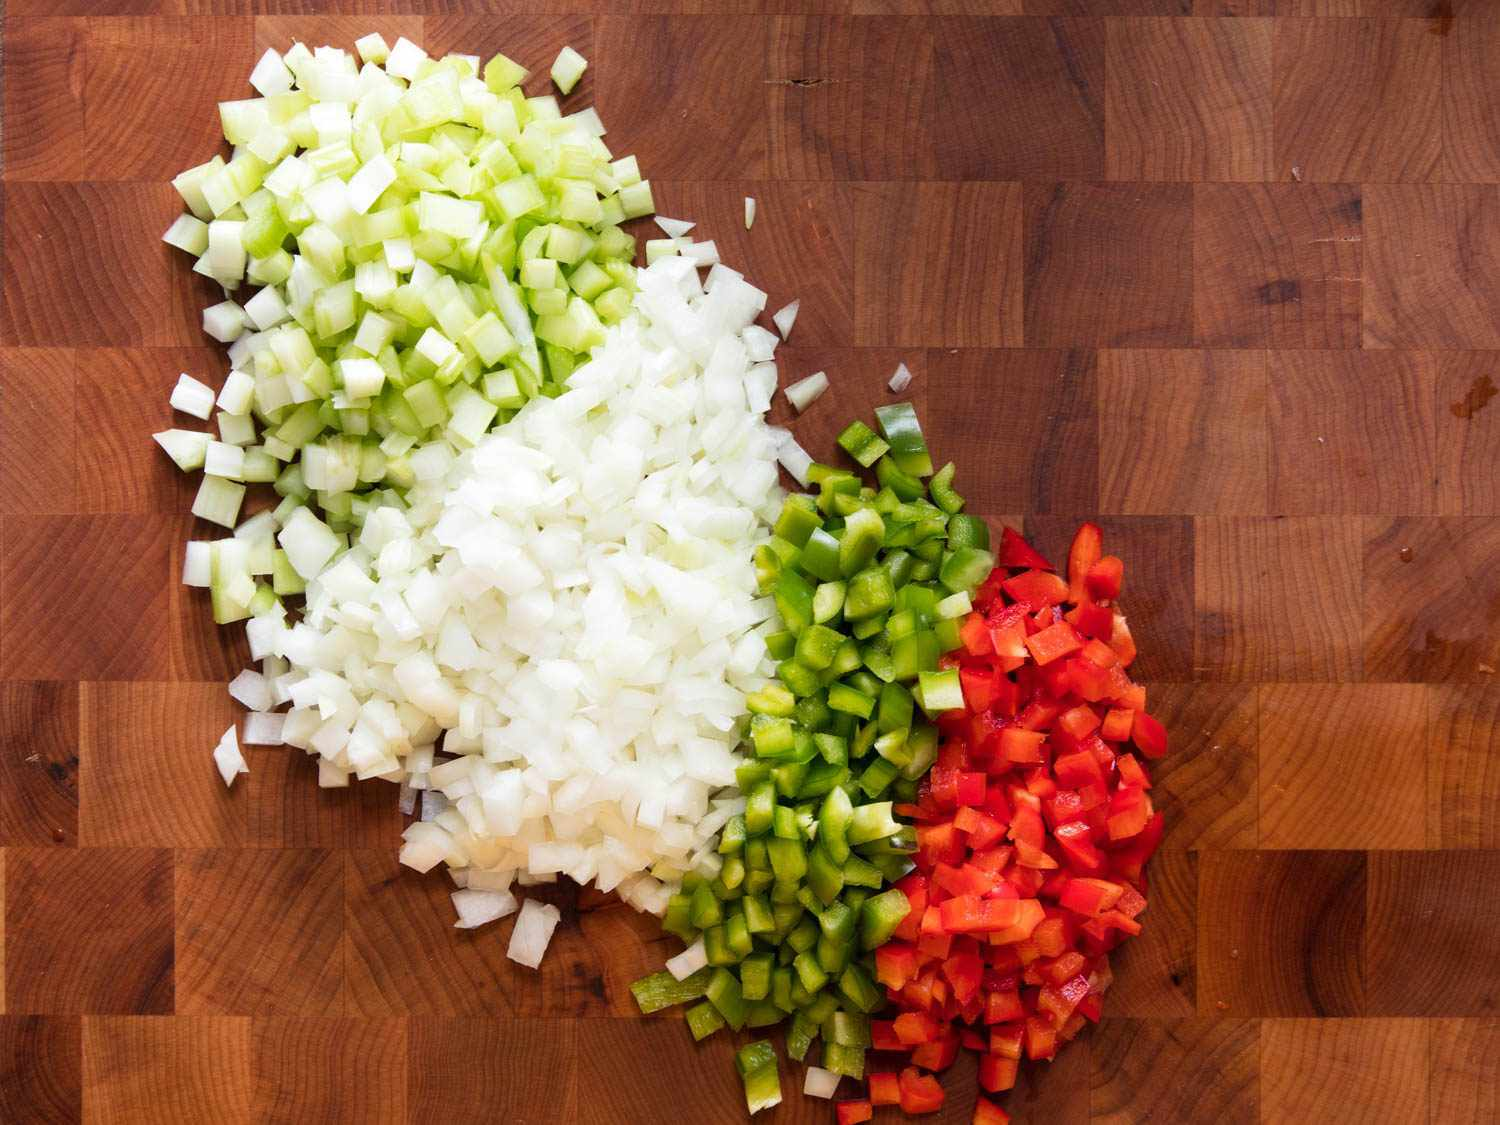 The holy trinity of creole and cajun cooking: diced onion, bell peppers, and celery